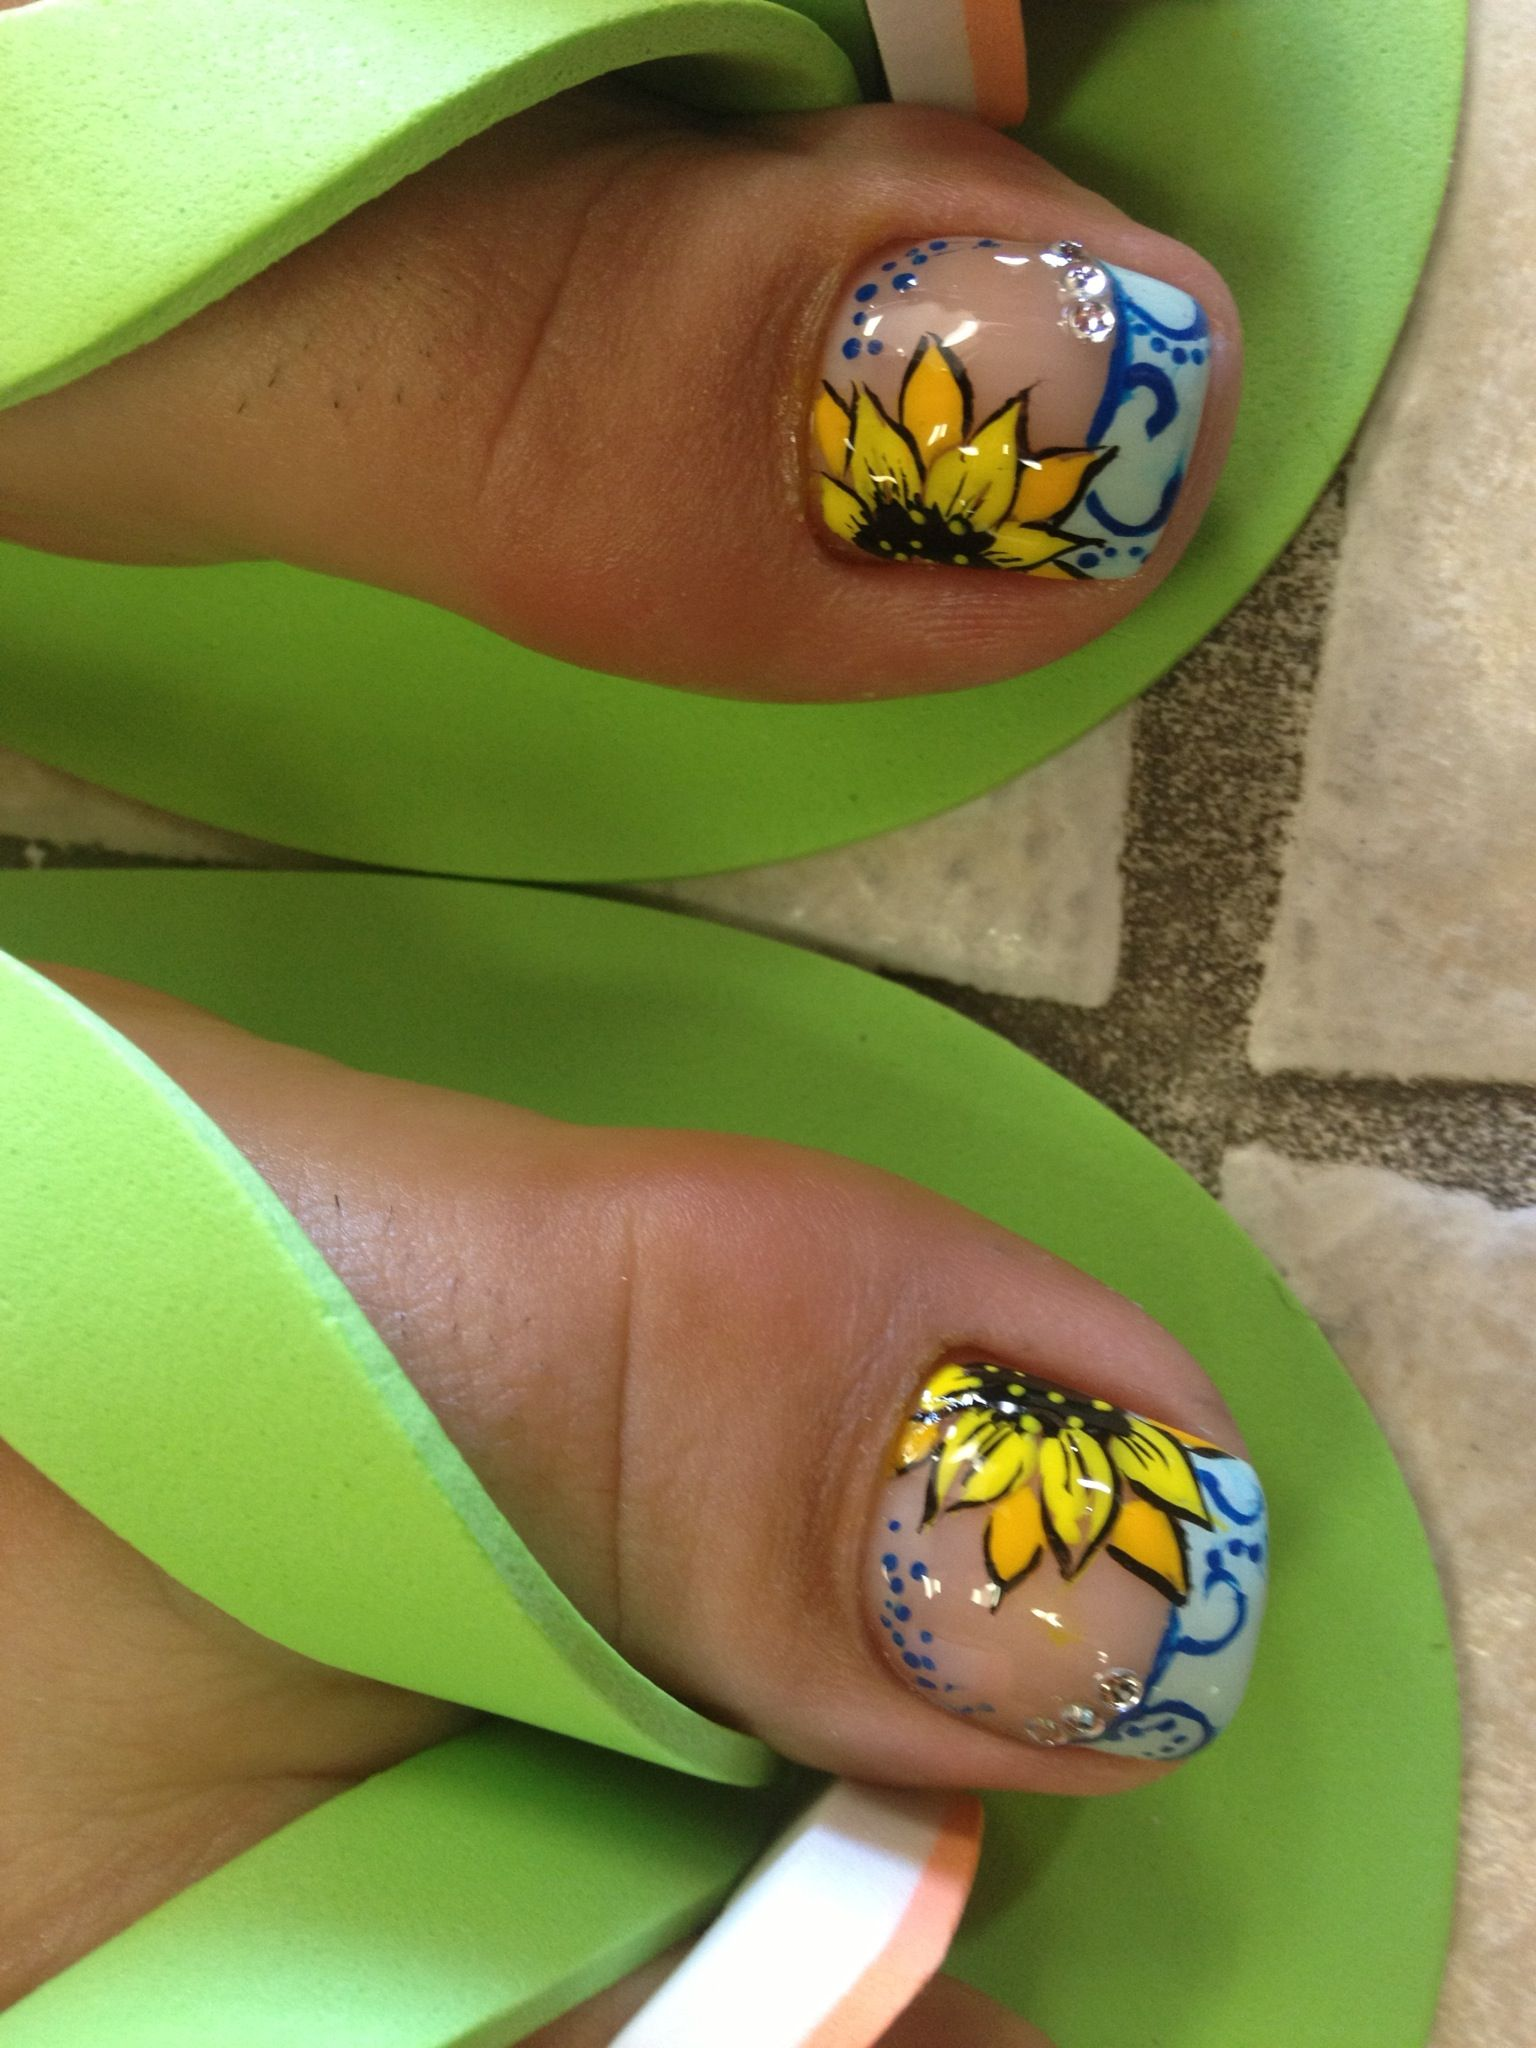 Nail design | My nail designs | Pinterest | Pedicura, Girasoles y ...